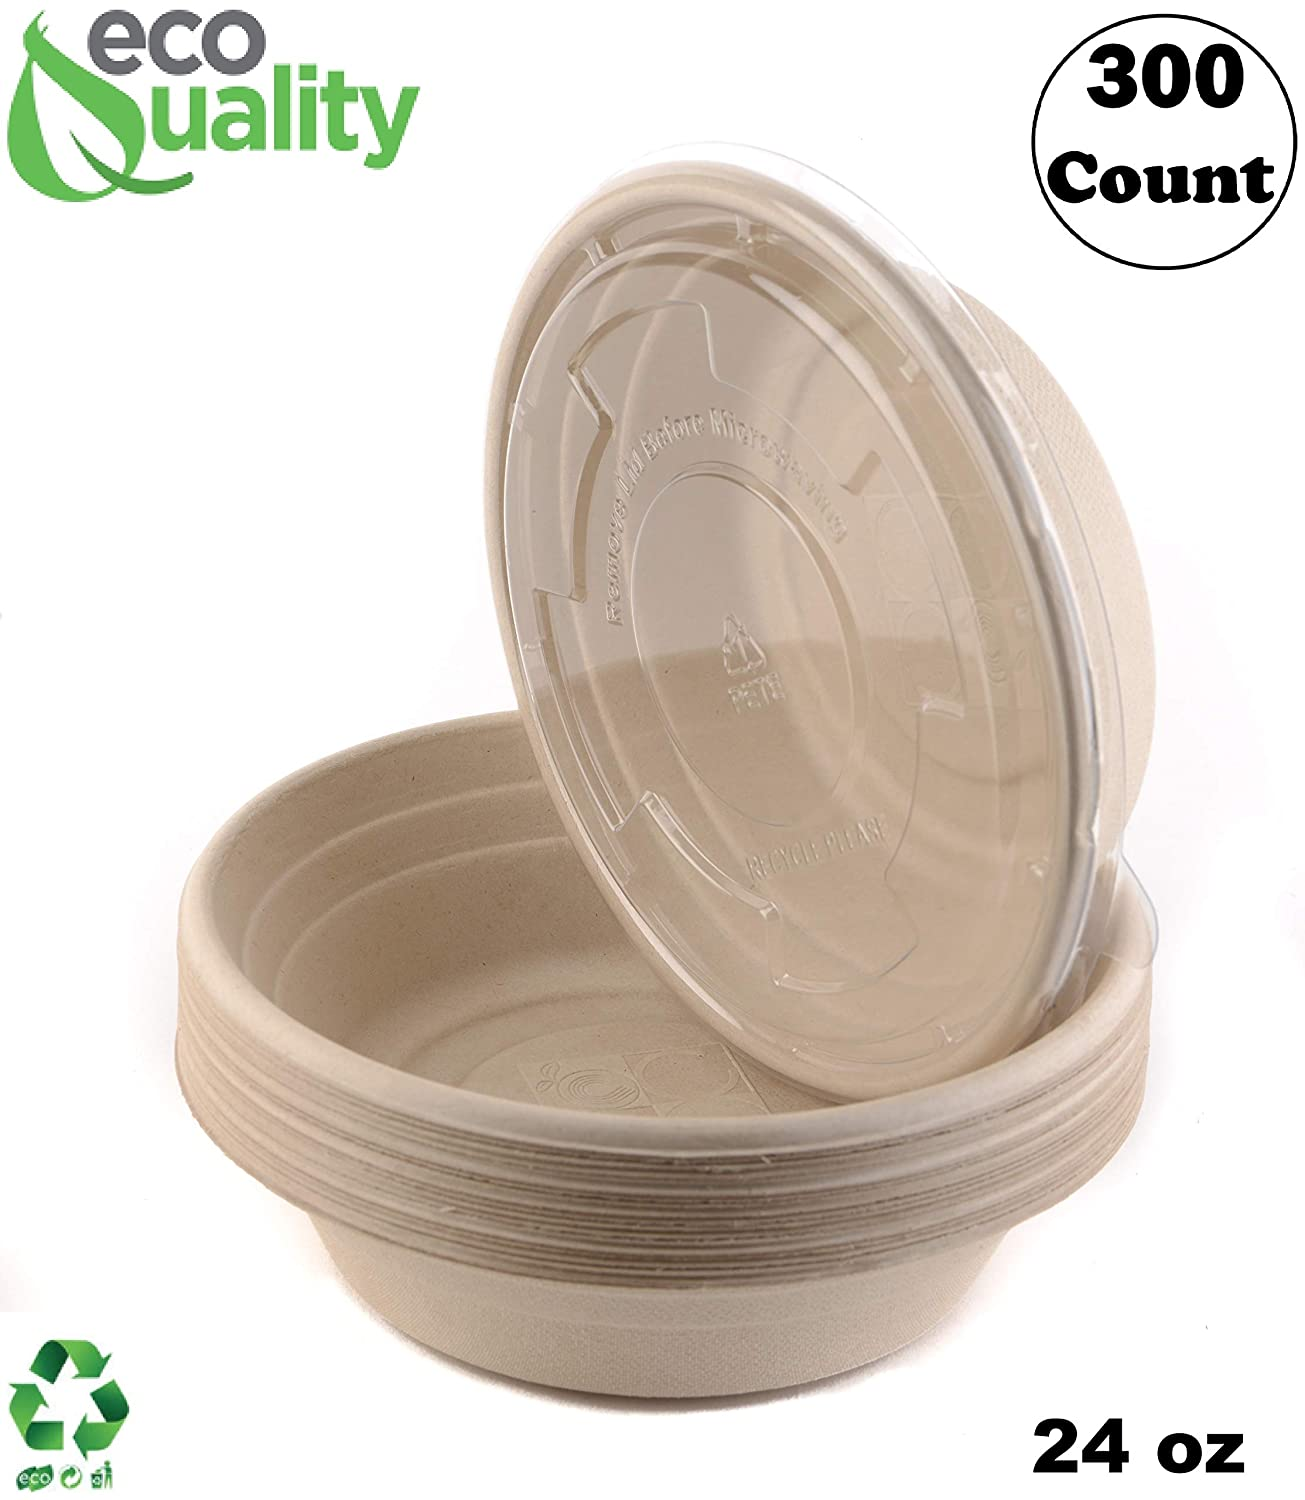 300 Sale special price Count - EcoQuality 24oz Round with Popular standard Lids Disposable Nat Bowls